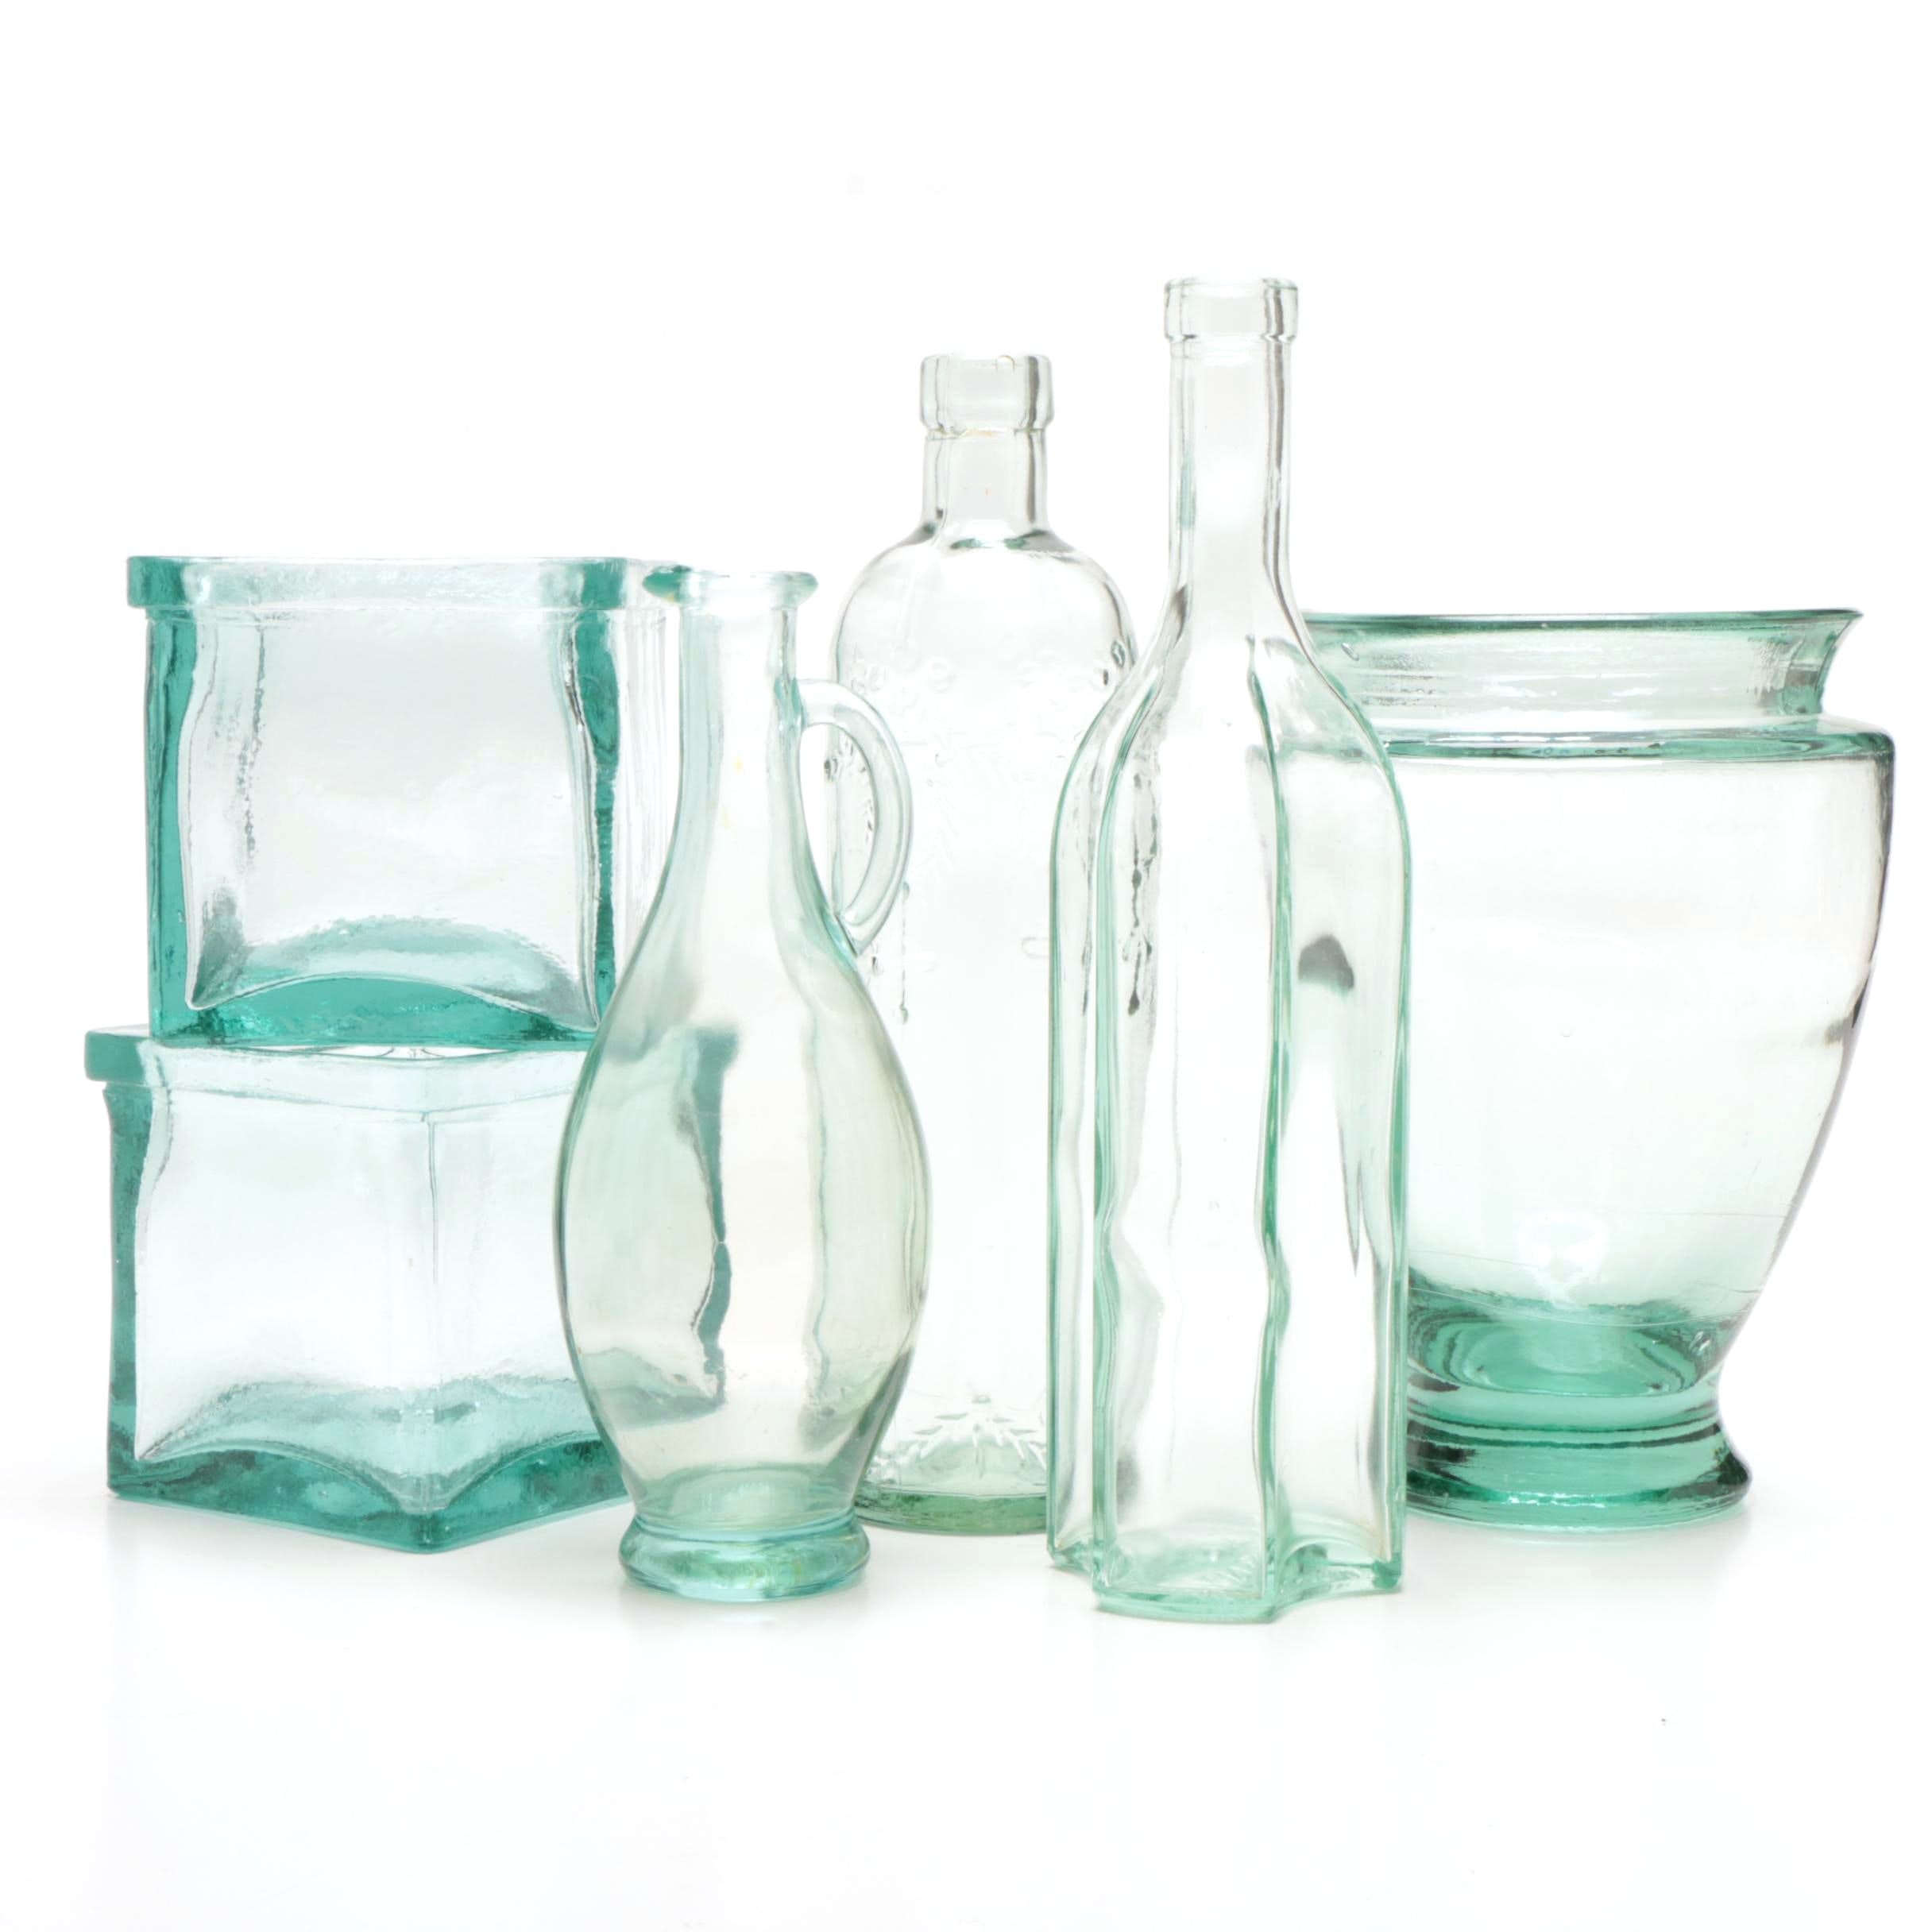 Green Glass Bottle and Vase Collection